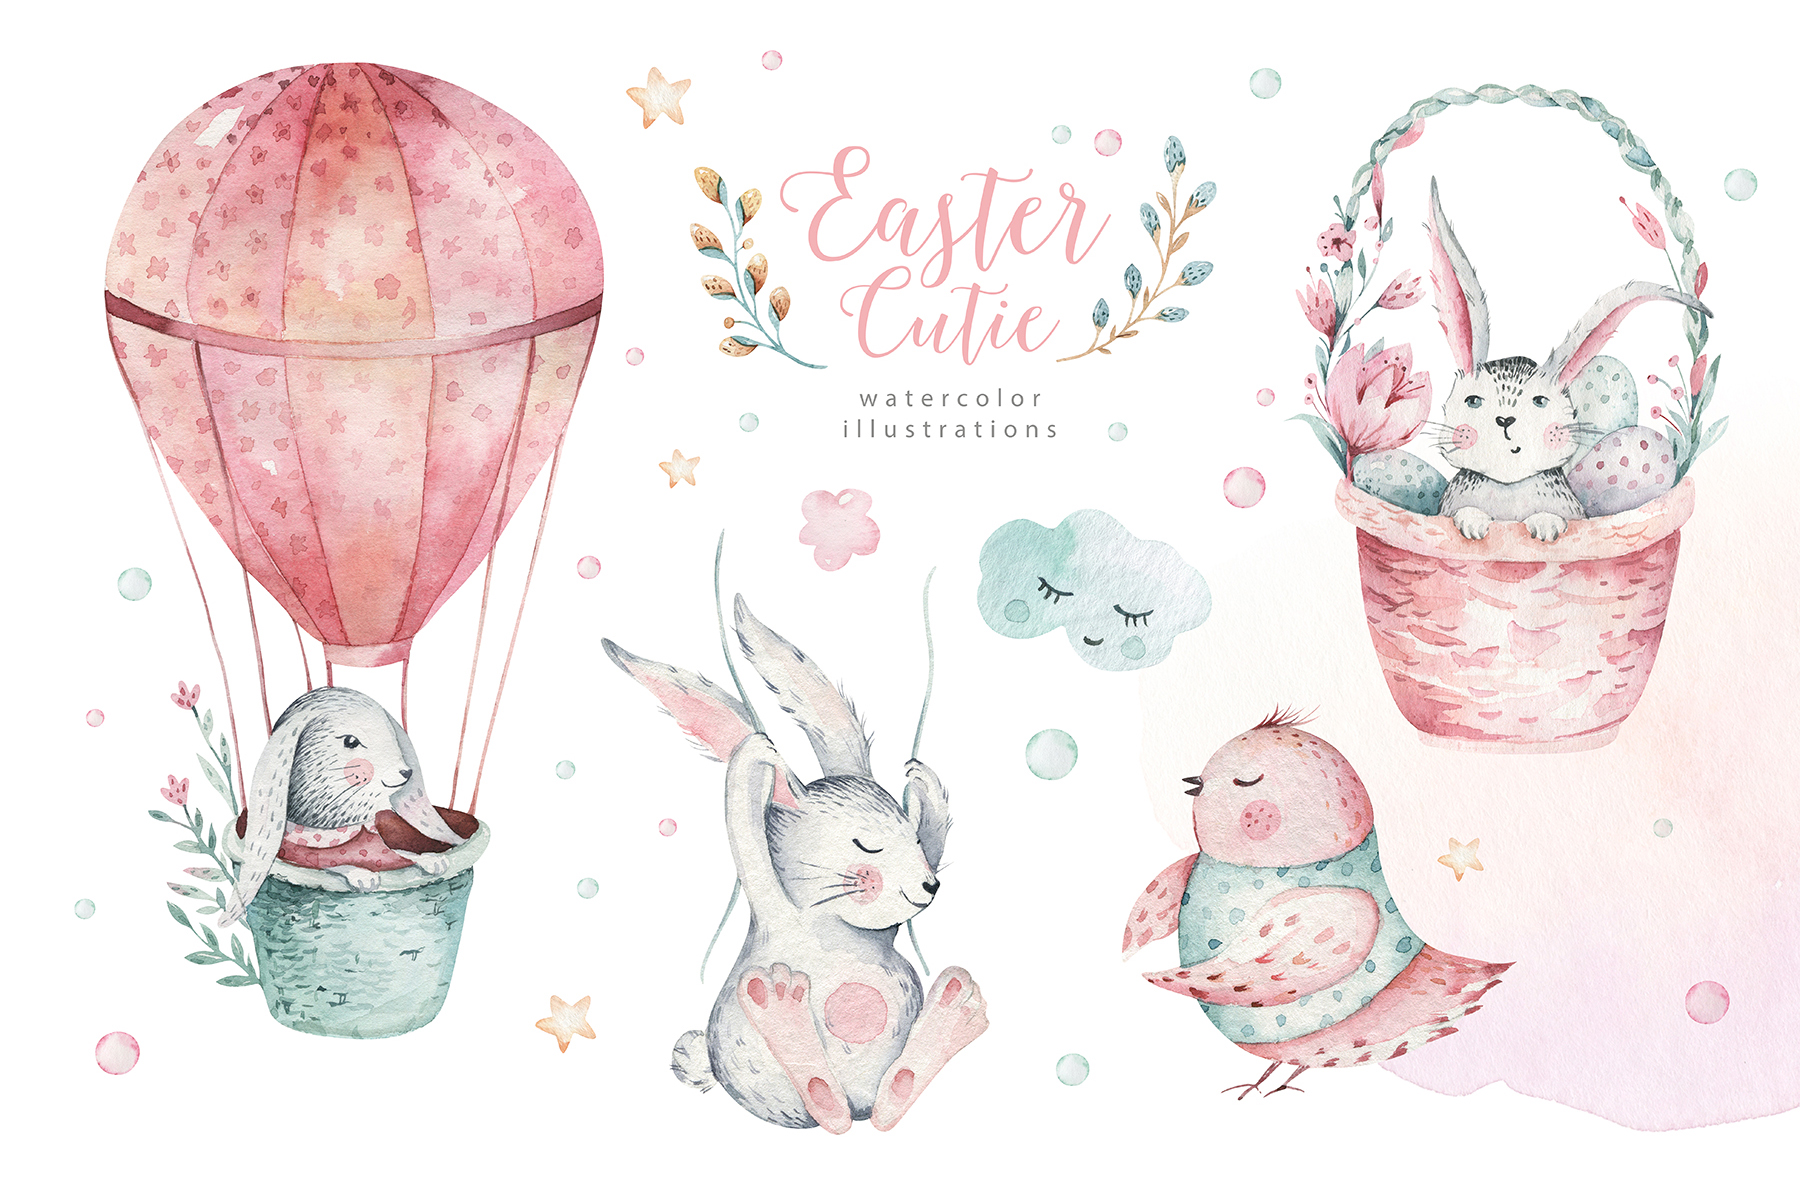 Easter cutie. Part II example image 3